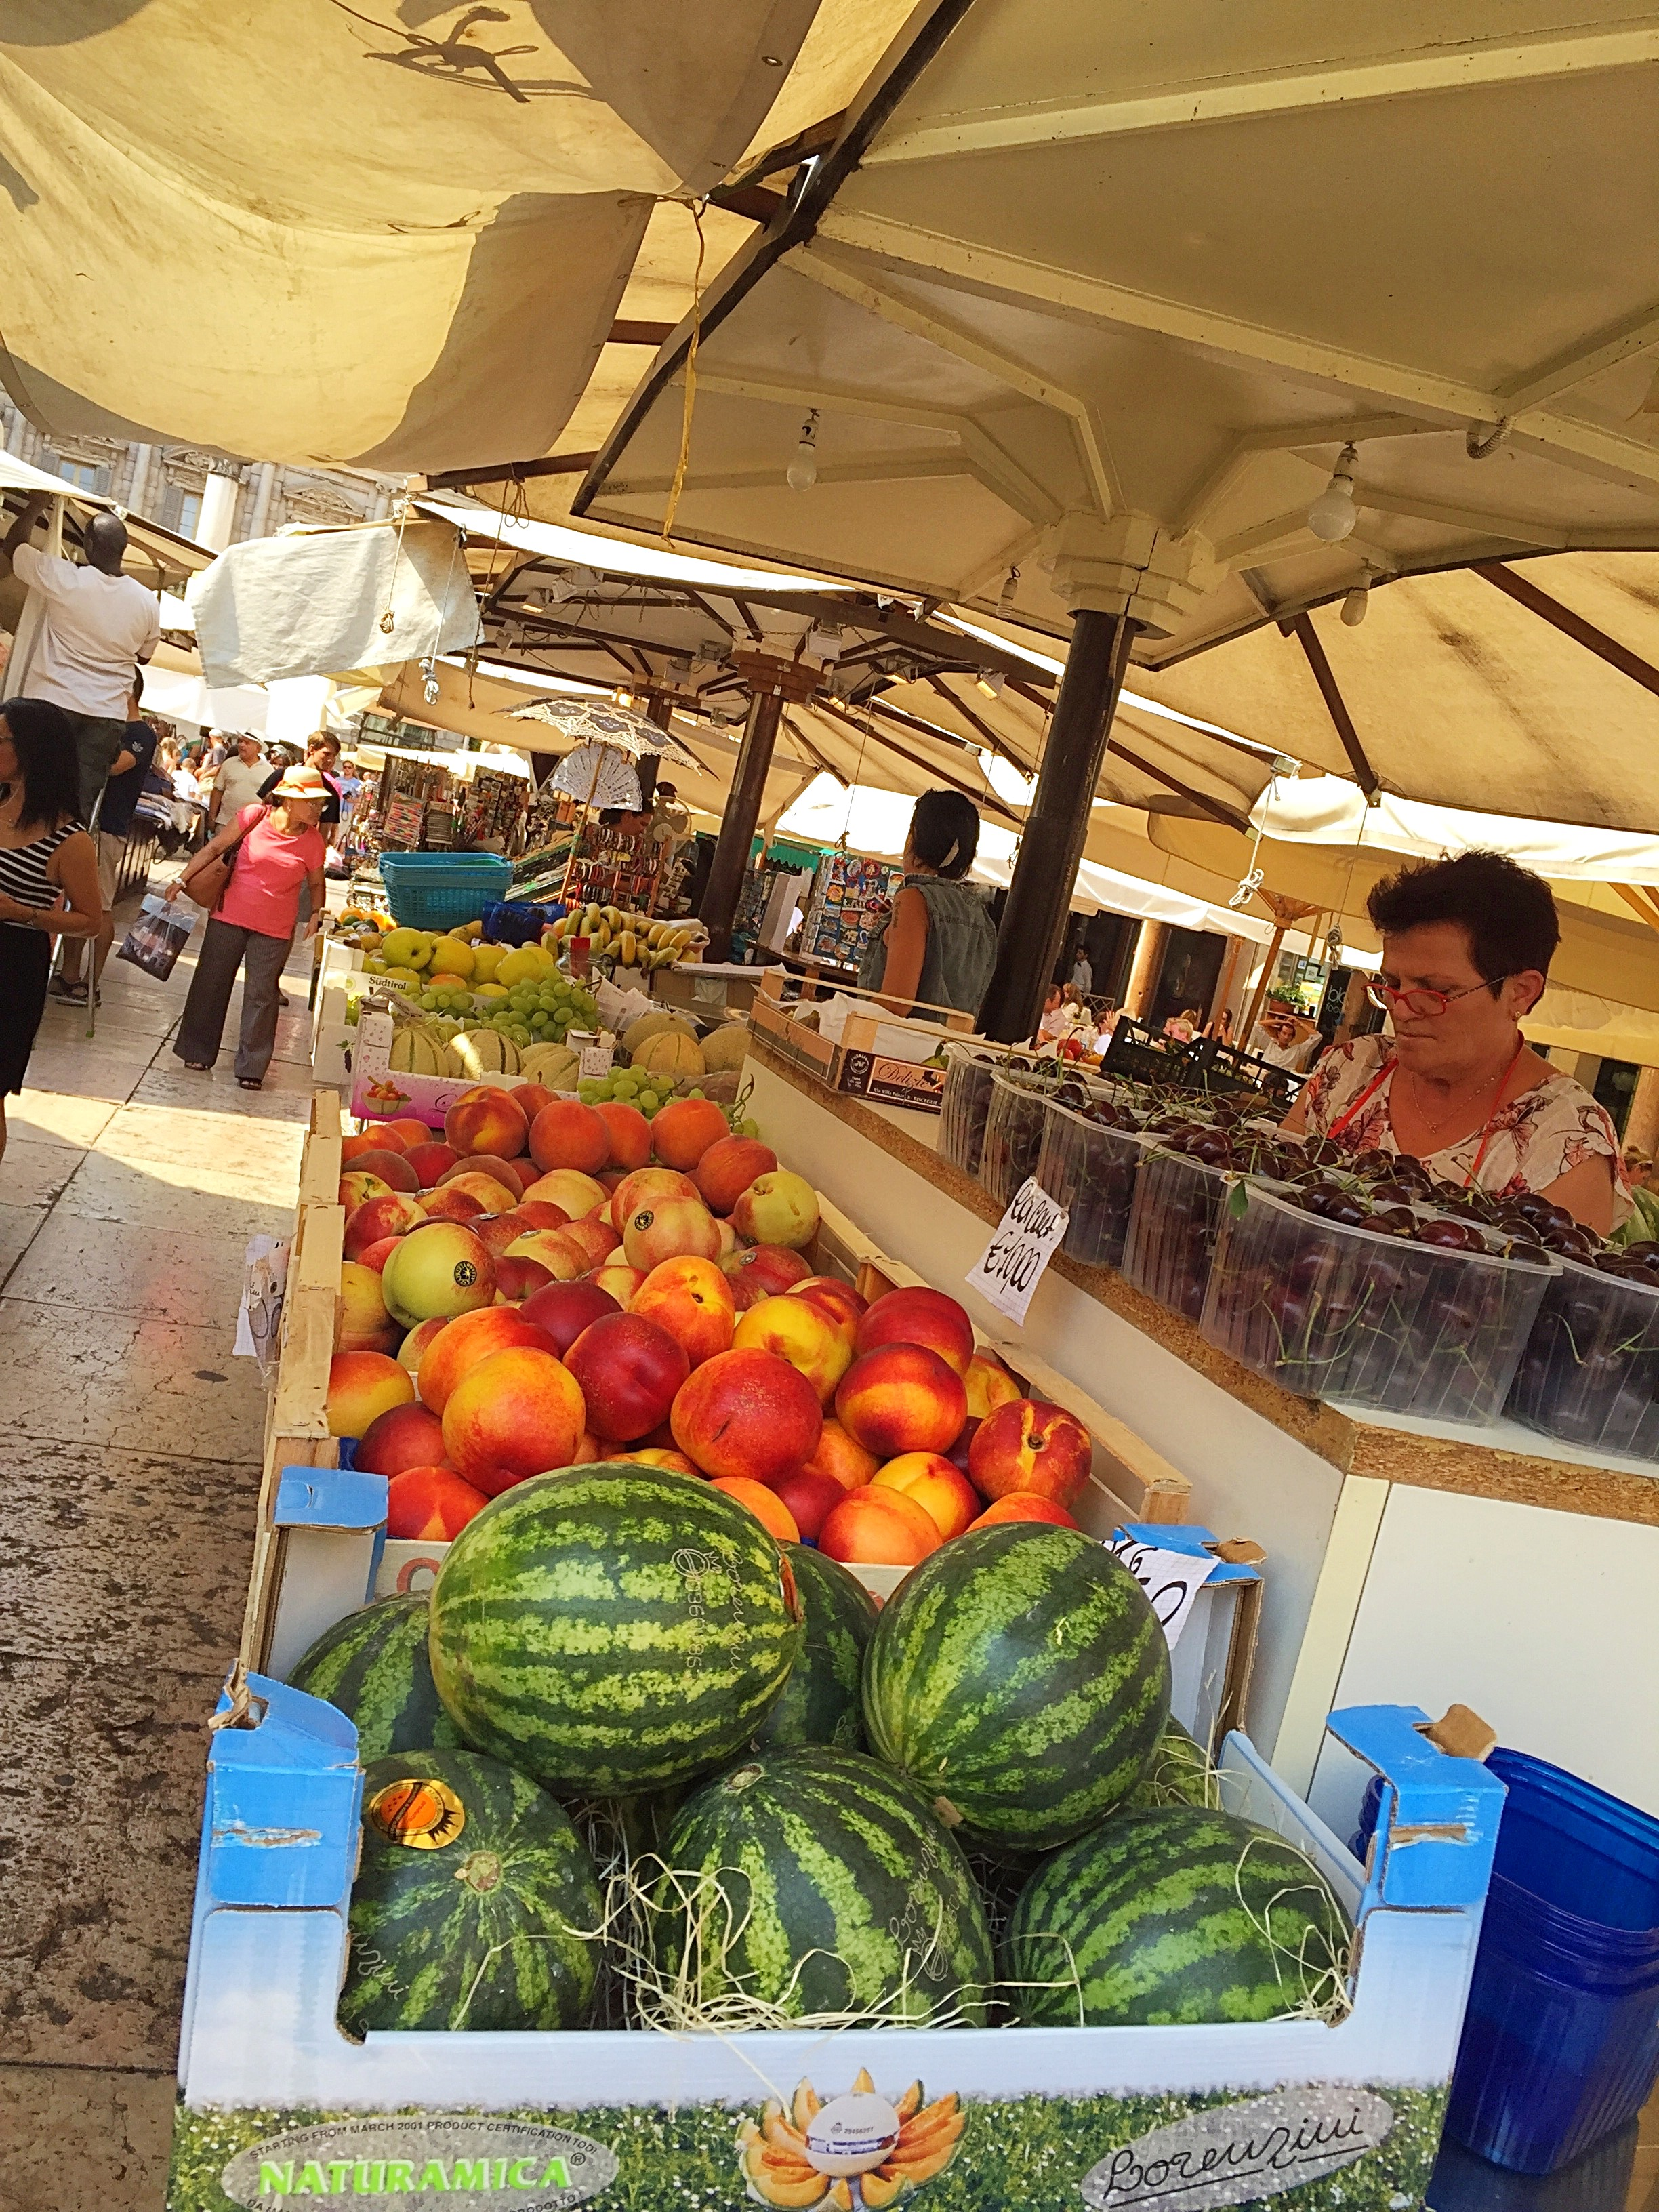 Local vendors and their kiosks selling fresh produce and souvenirs